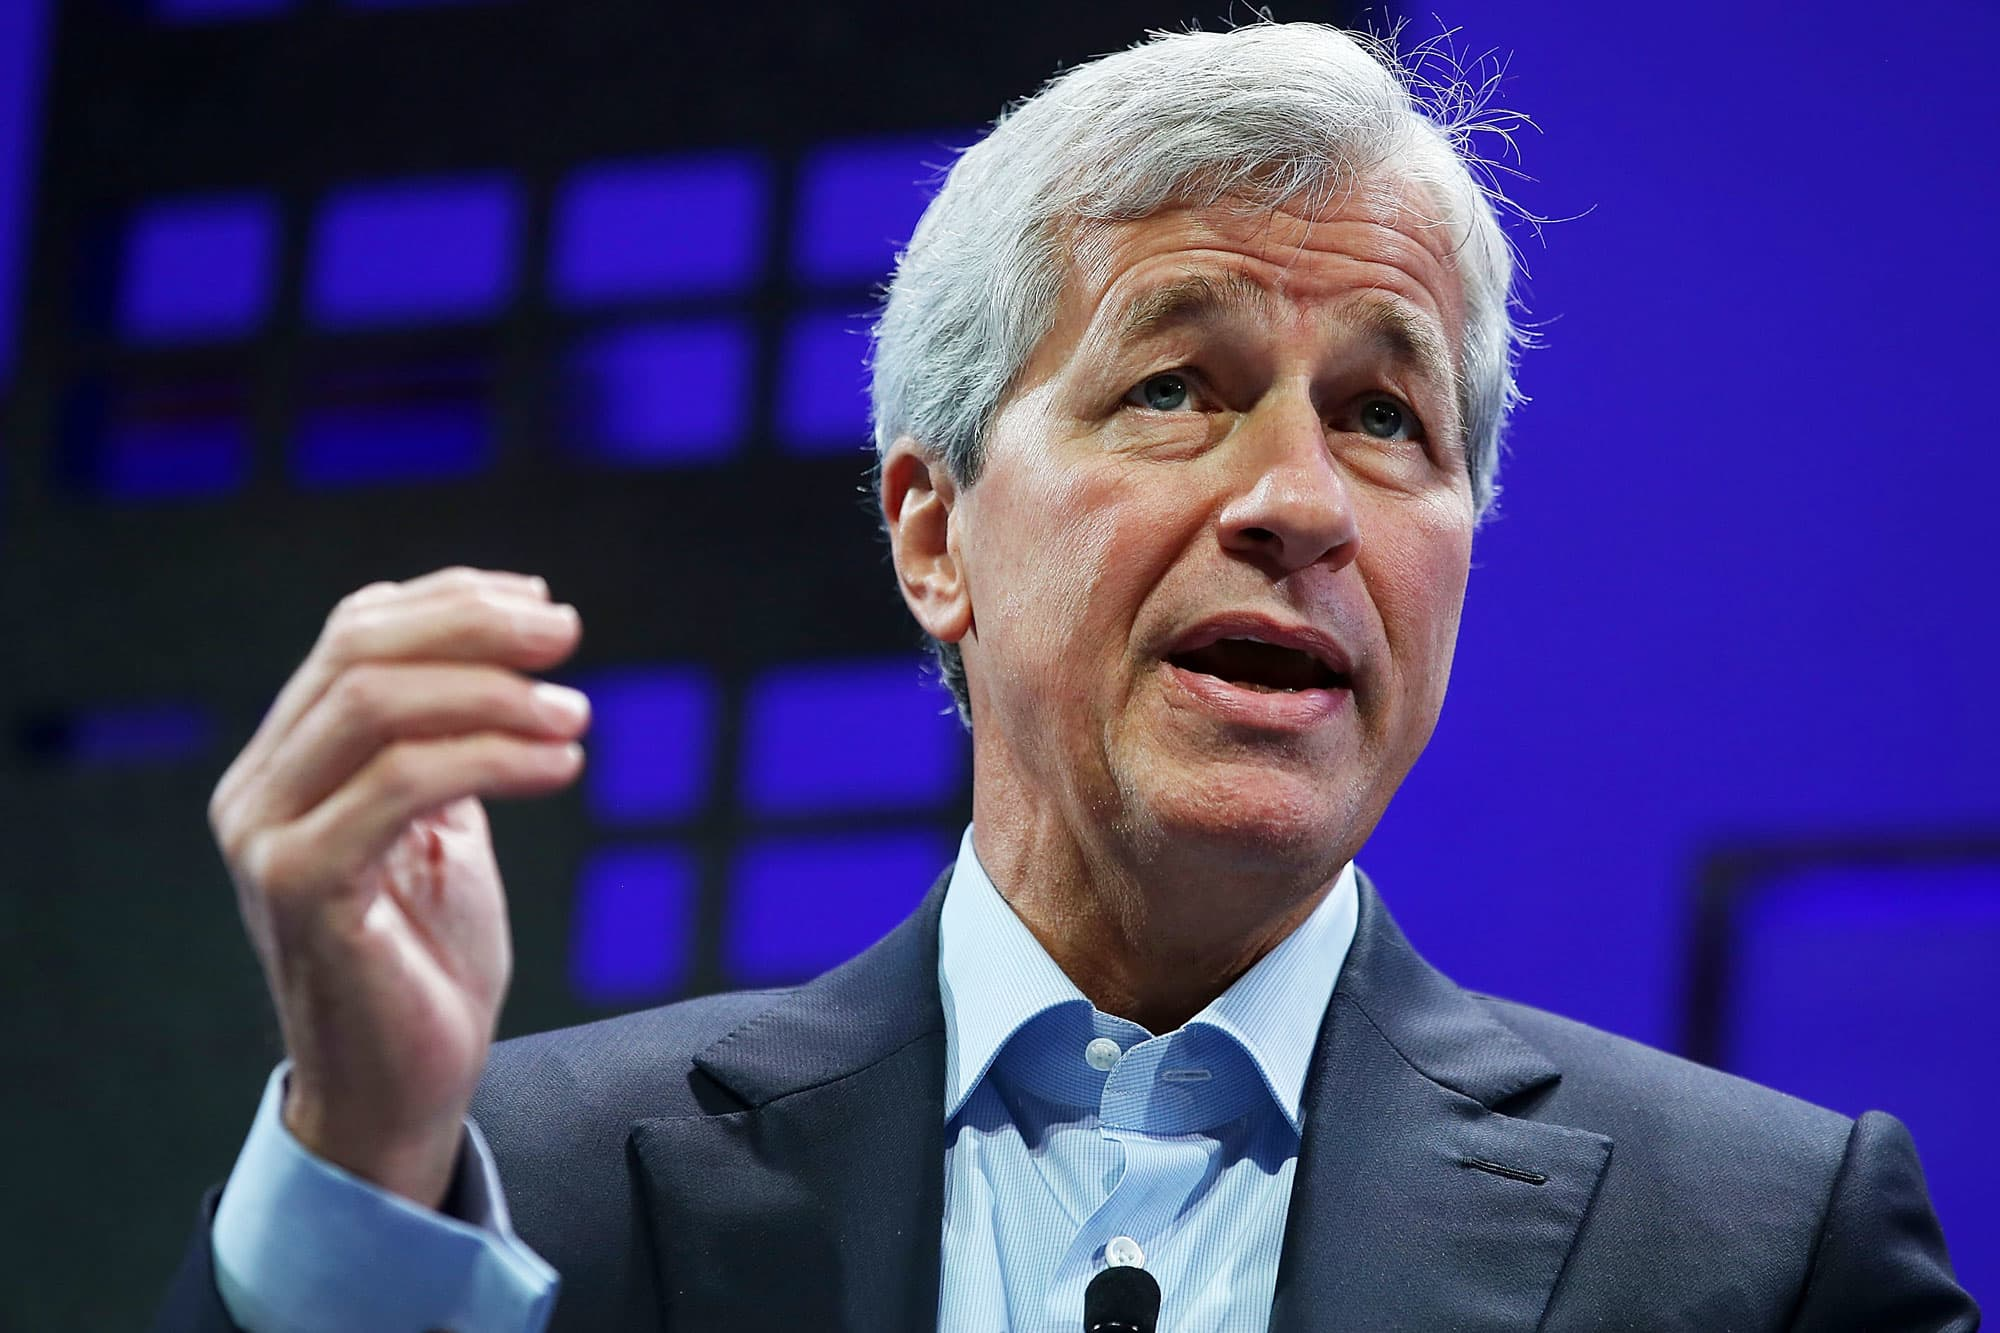 Jamie Dimon says he's OK with higher taxes on the rich, but wealth tax is 'almost impossible'